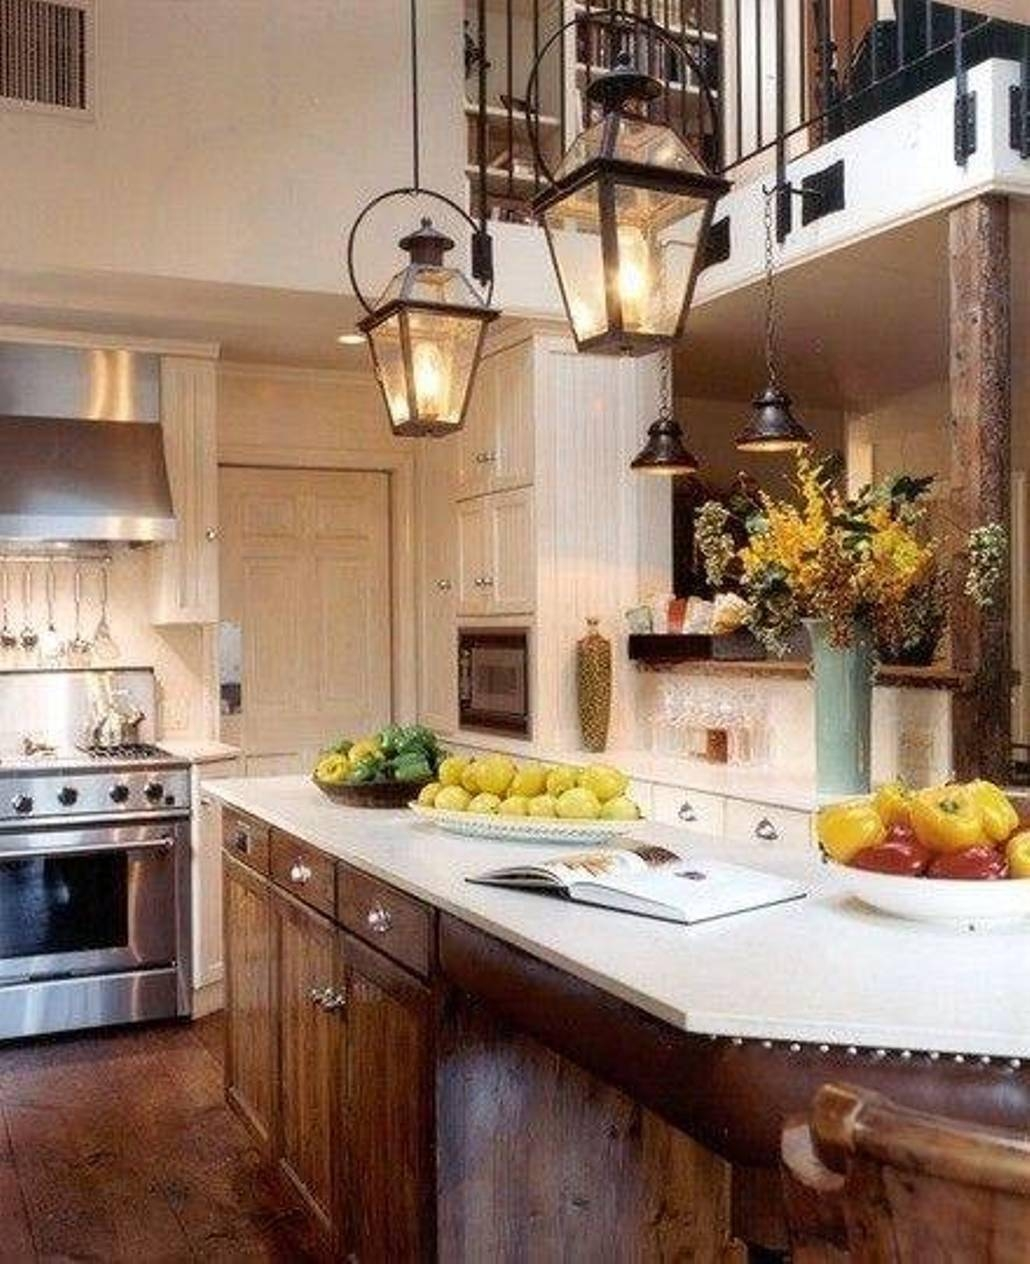 Farmhouse Pendant Lighting Fixtures | Light Fixtures Design Ideas within Farmhouse Pendant Lights Fixtures (Image 7 of 15)